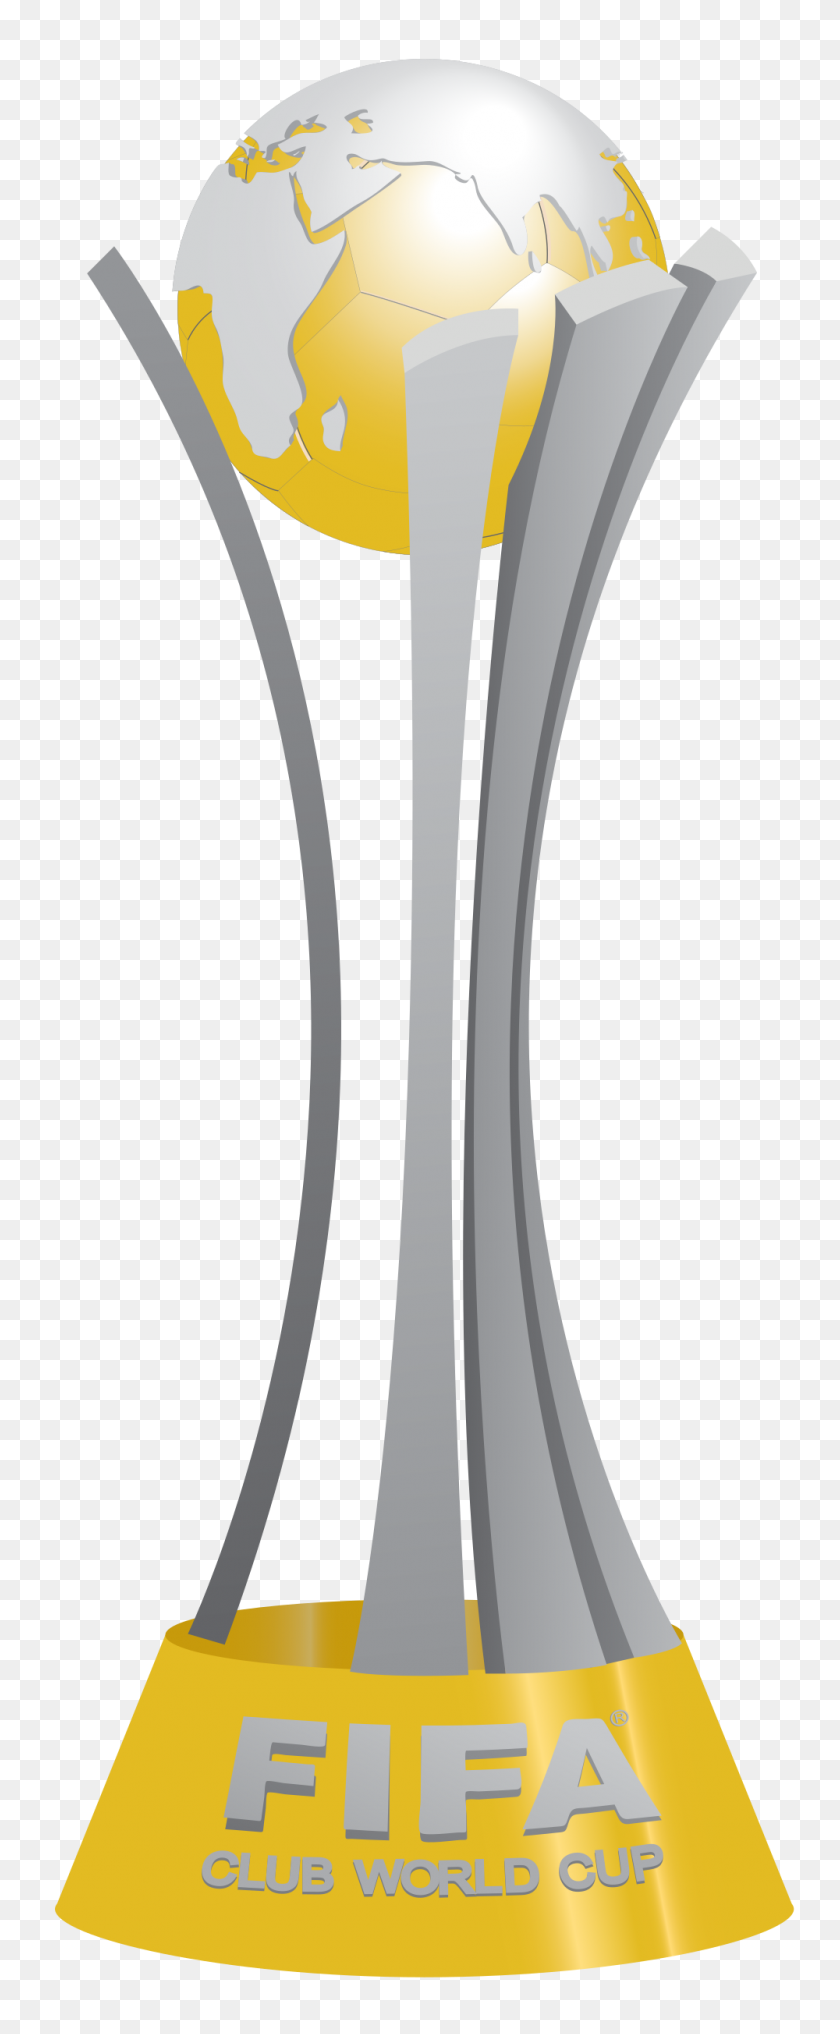 Fifa Club World Cup - World Cup PNG – Stunning free transparent png